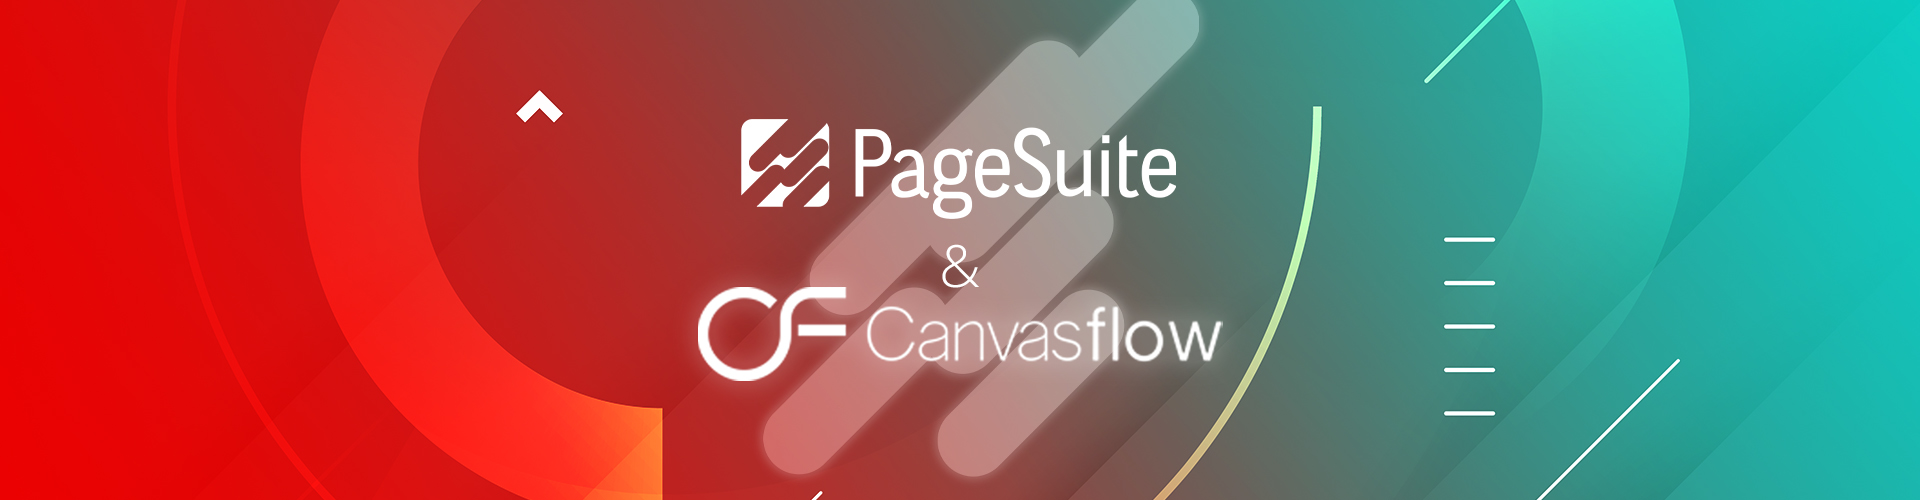 Header image of New Tech Partnership: Canvasflow & PageSuite